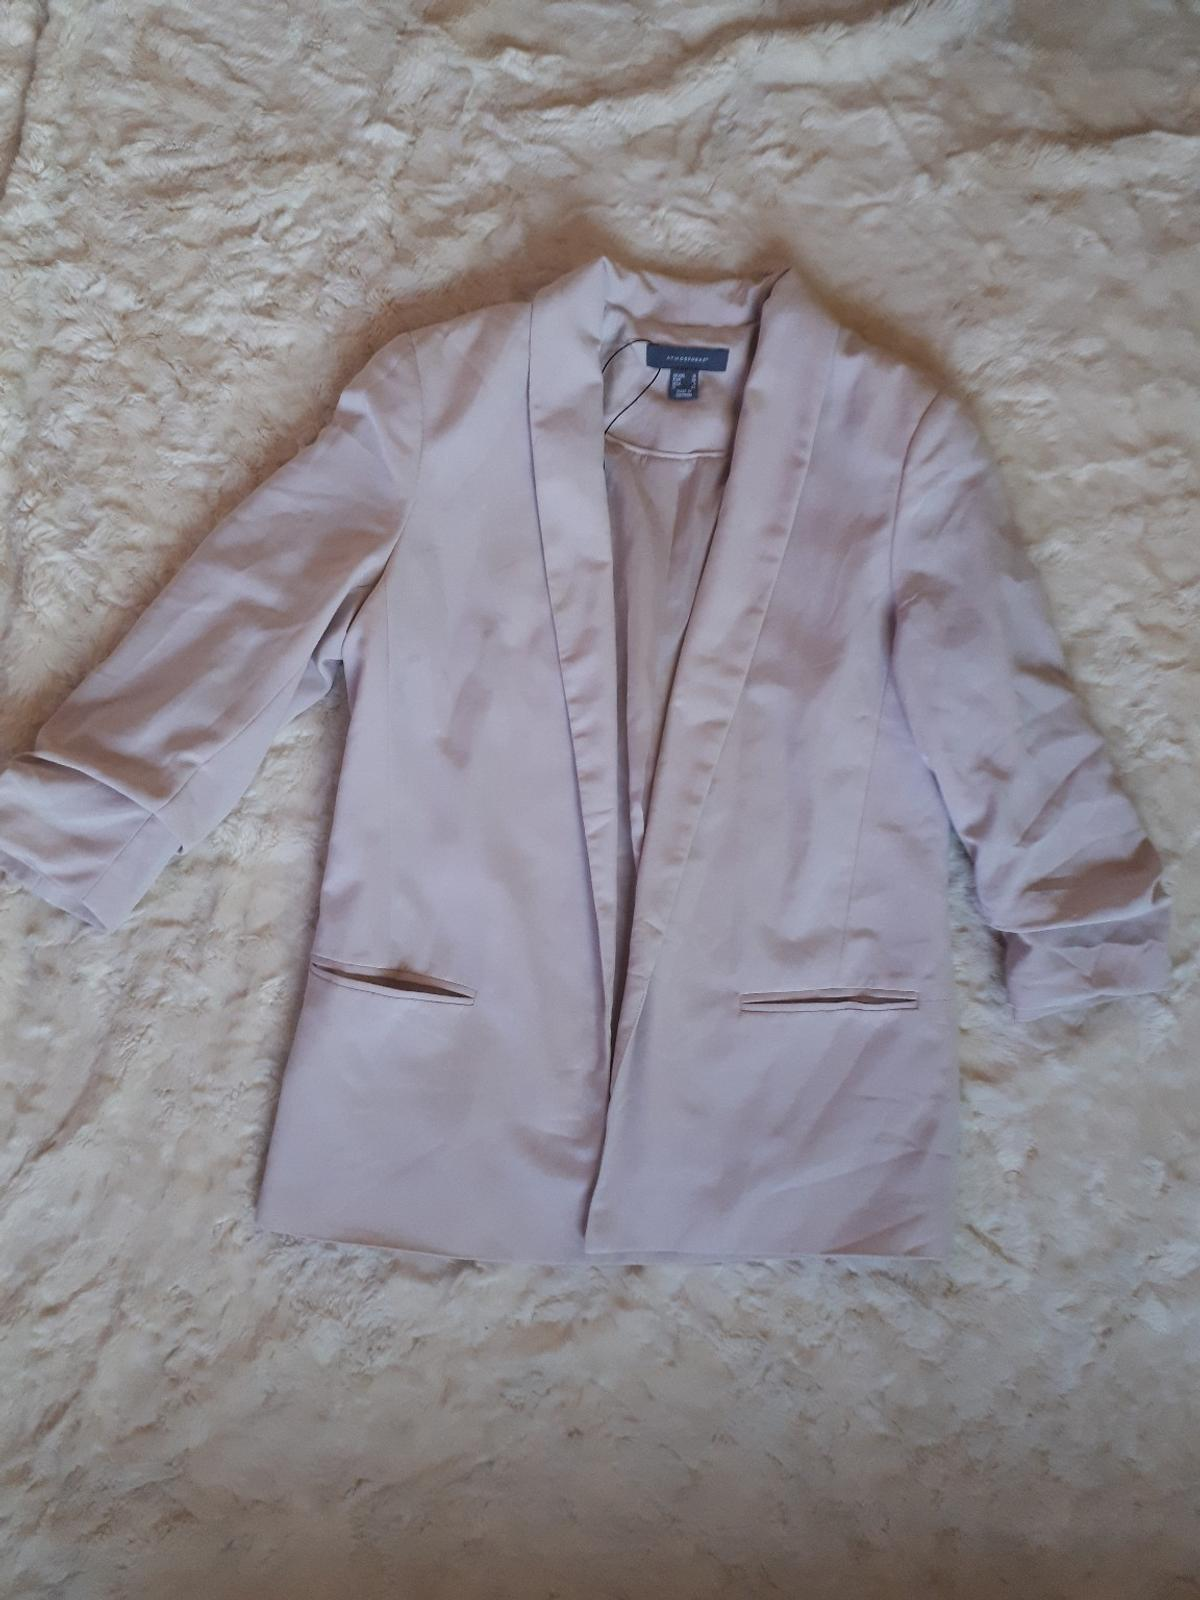 Size UK 10, pale pink blazer in a nice condition.  Please have a look around, I just sorted my wardrobe out and have many things that must go. I'm open to offers, discount on bundles:)